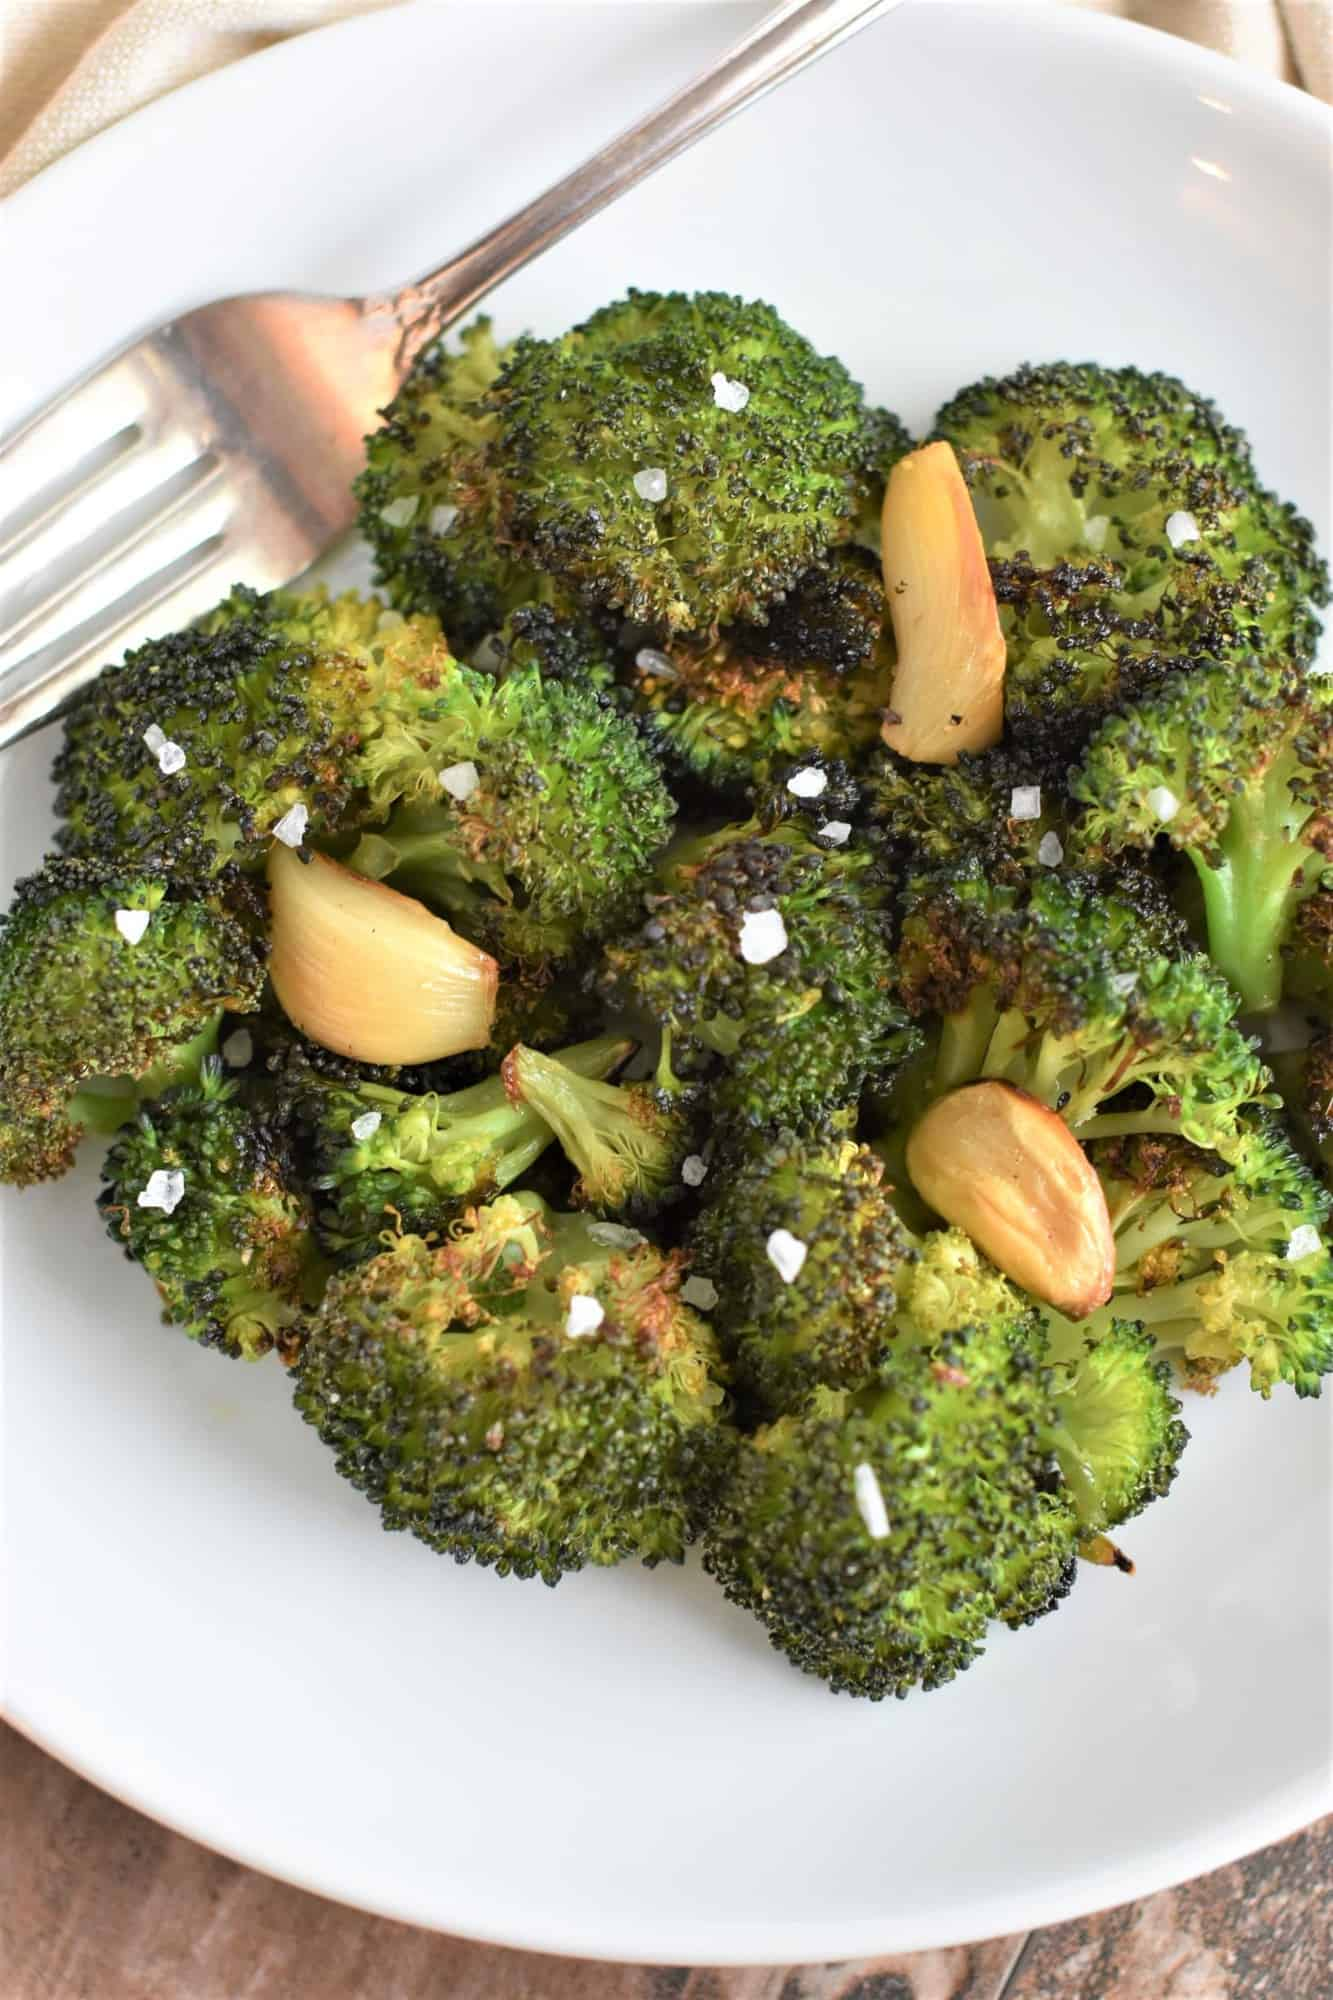 broccoli garnished with coarse sea salt on white plate with fork